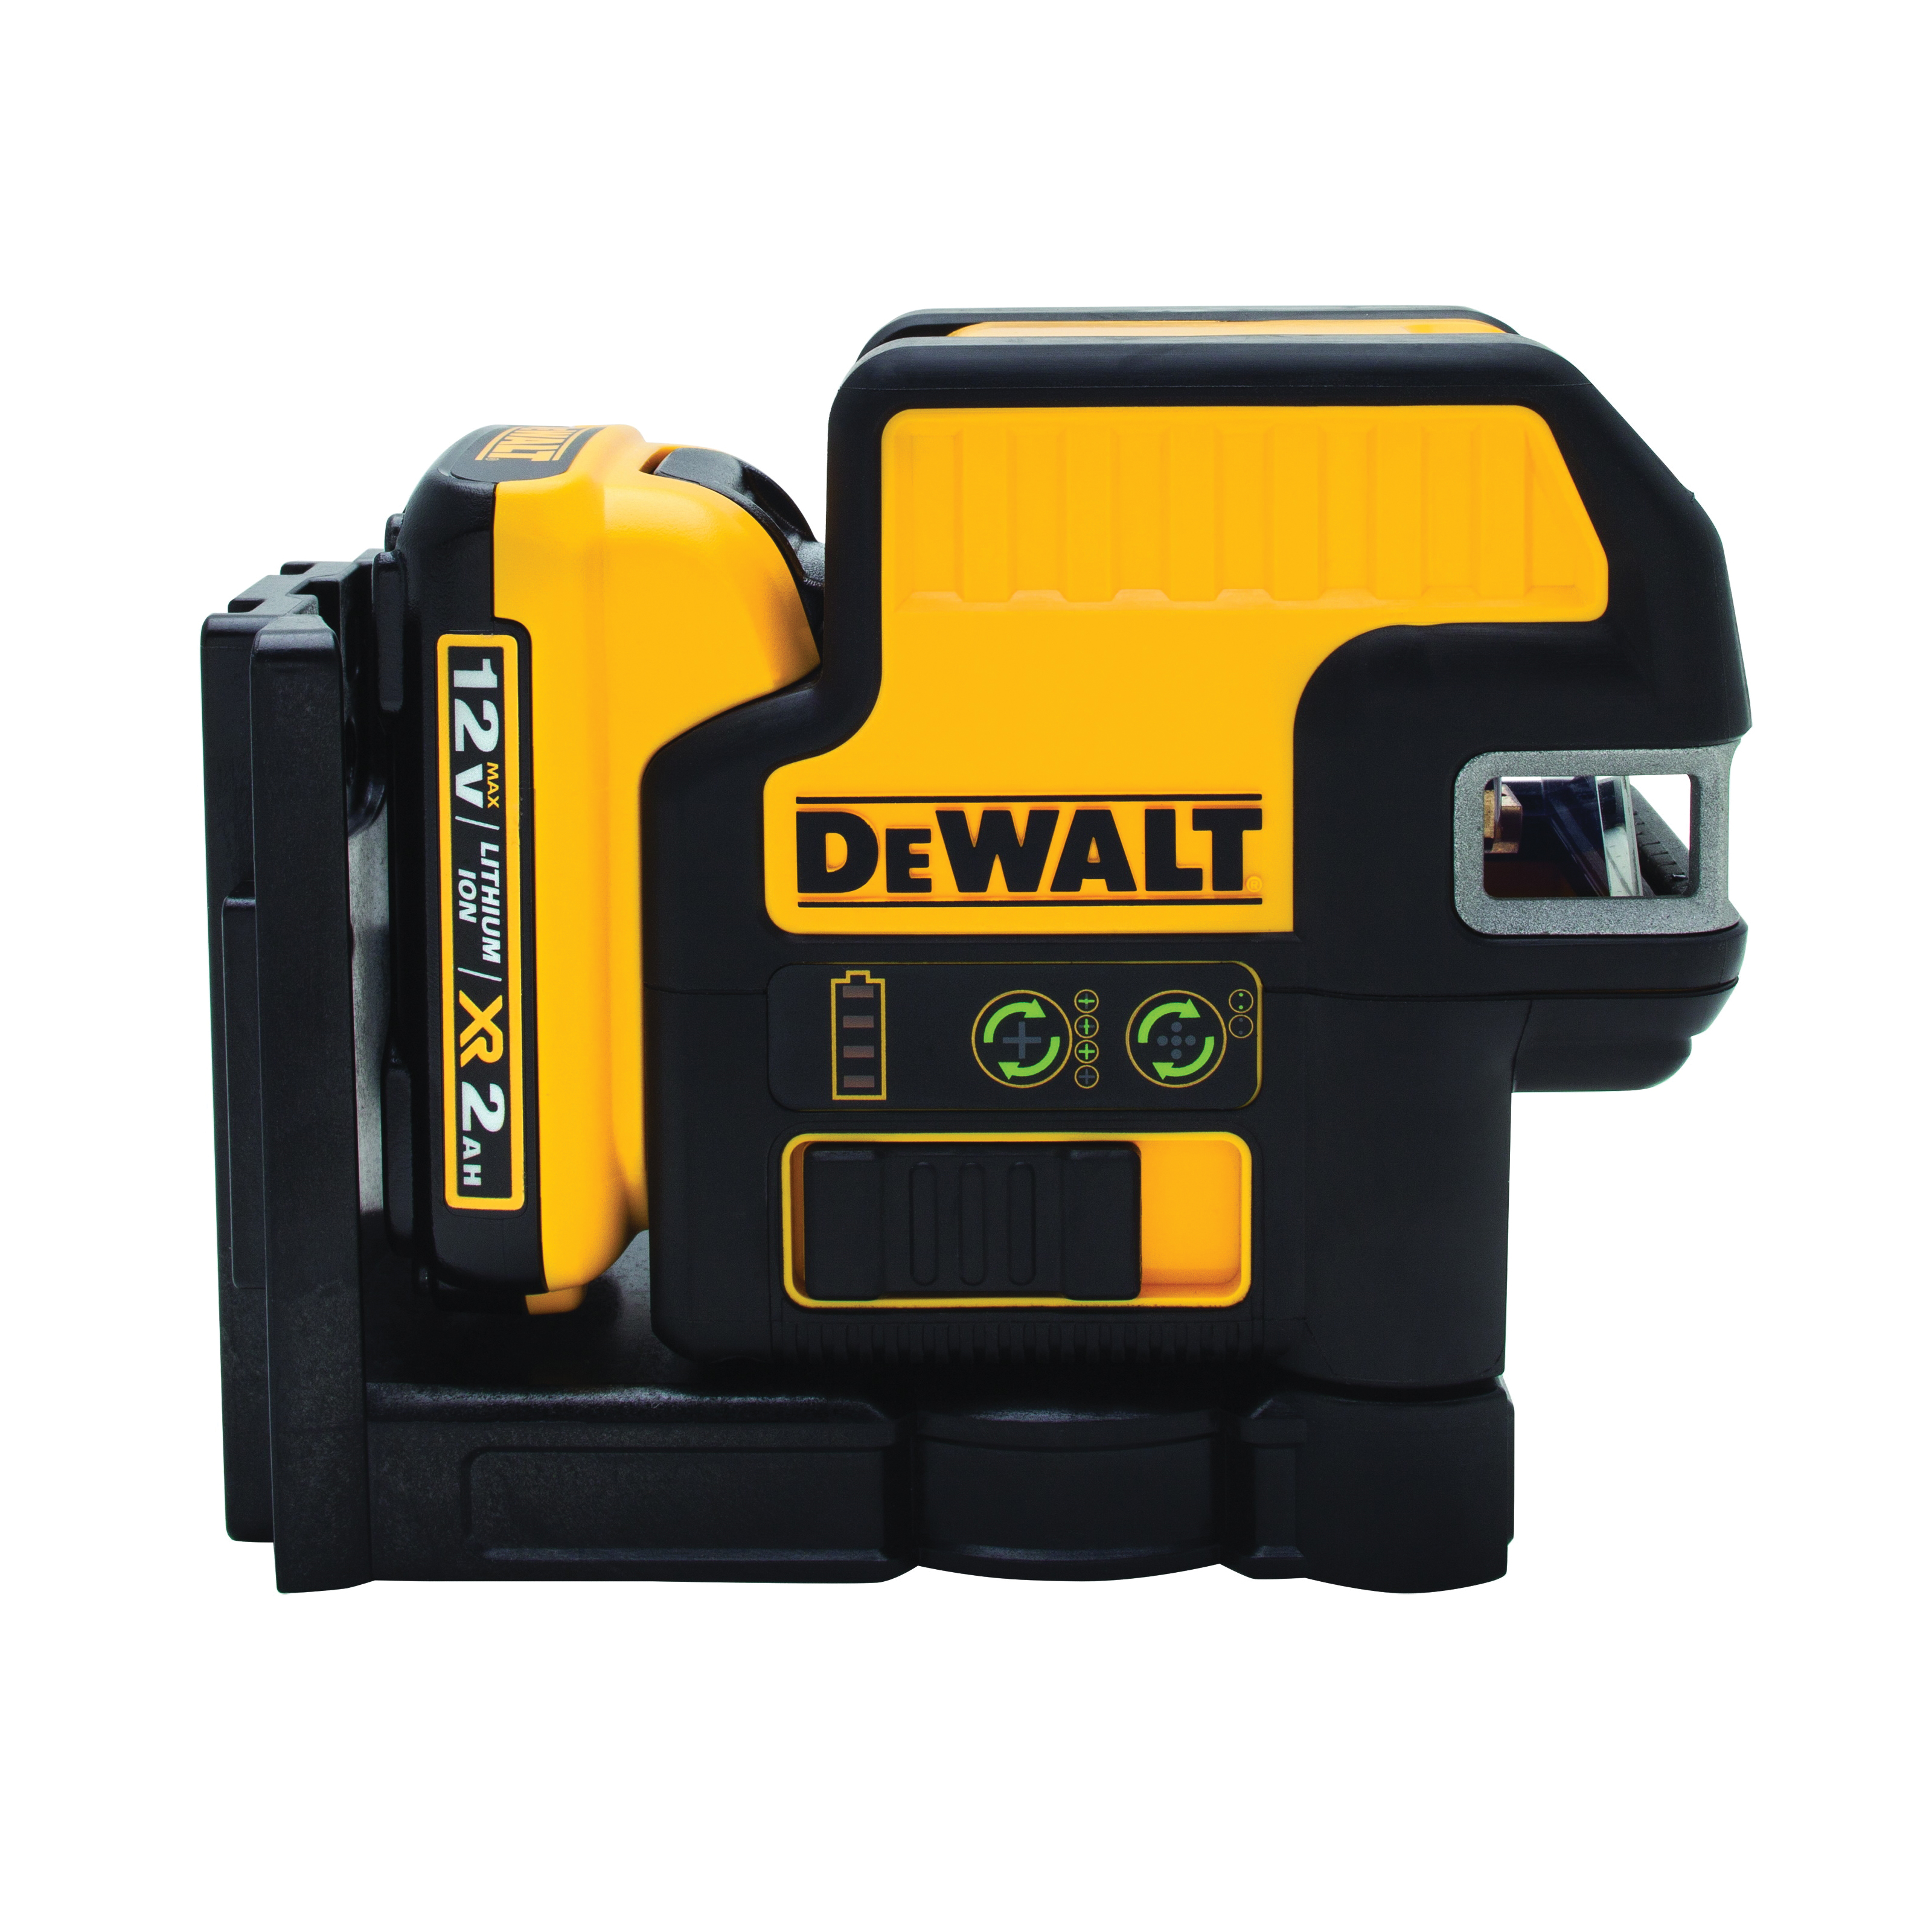 **Sale! Add to cart, save 15% more  - DeWALT® 12V MAX* DW0822LG 2-Spot Cordless Cross Line Laser Kit, 165 ft Measuring, +/-1/8 in at 100 ft Accuracy, 12 VDC, Lithium-Ion Battery, Plastic Housing